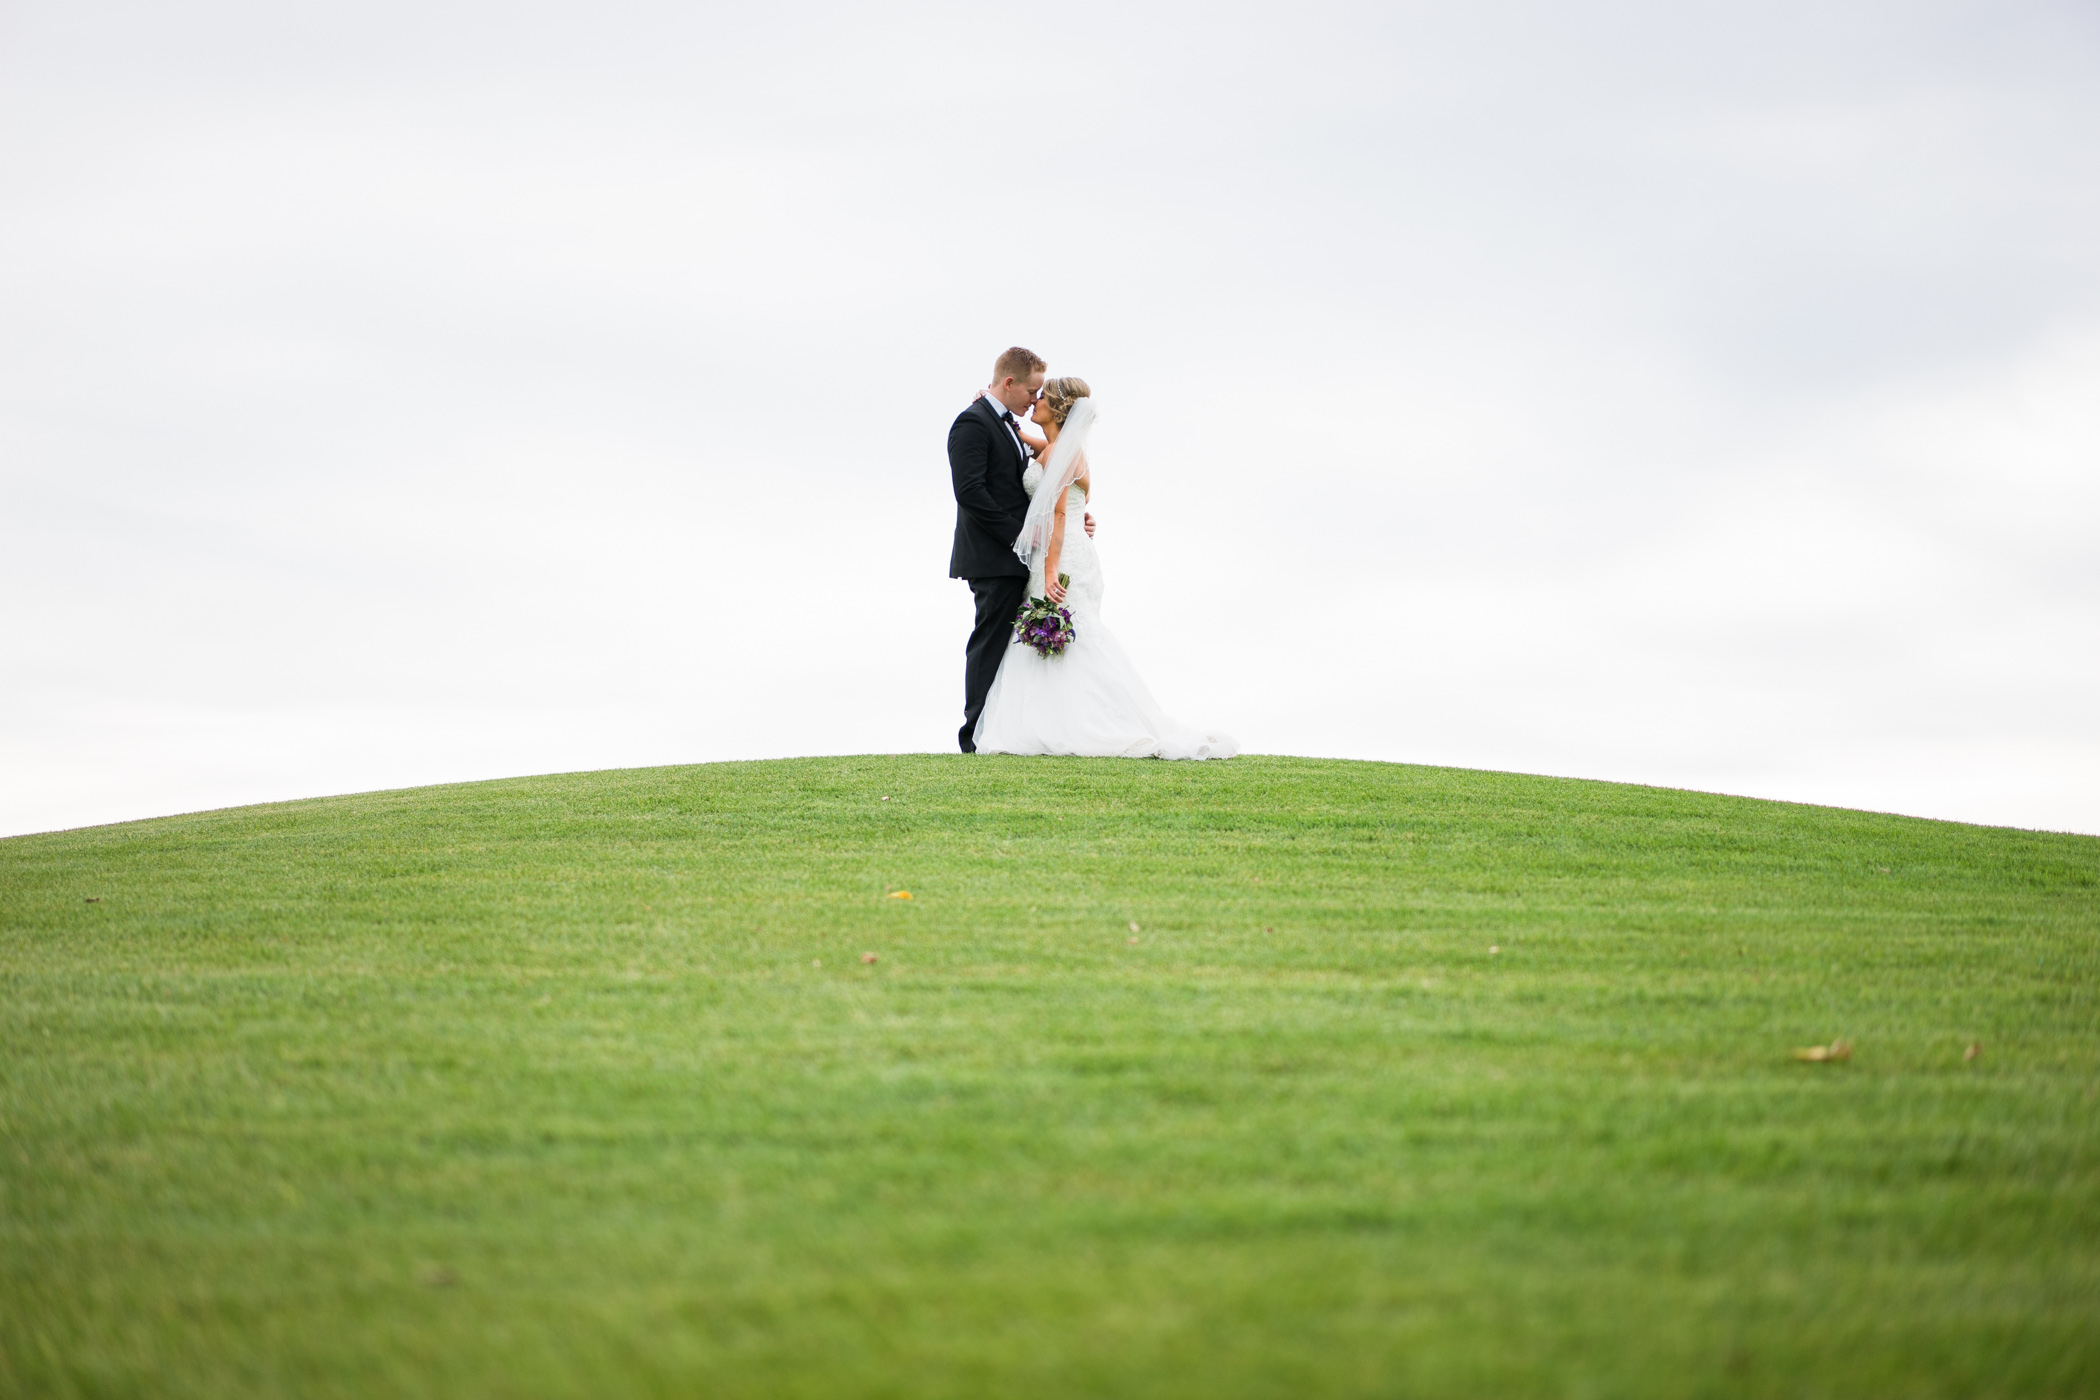 ct-bridges golf course wedding-1252.jpg